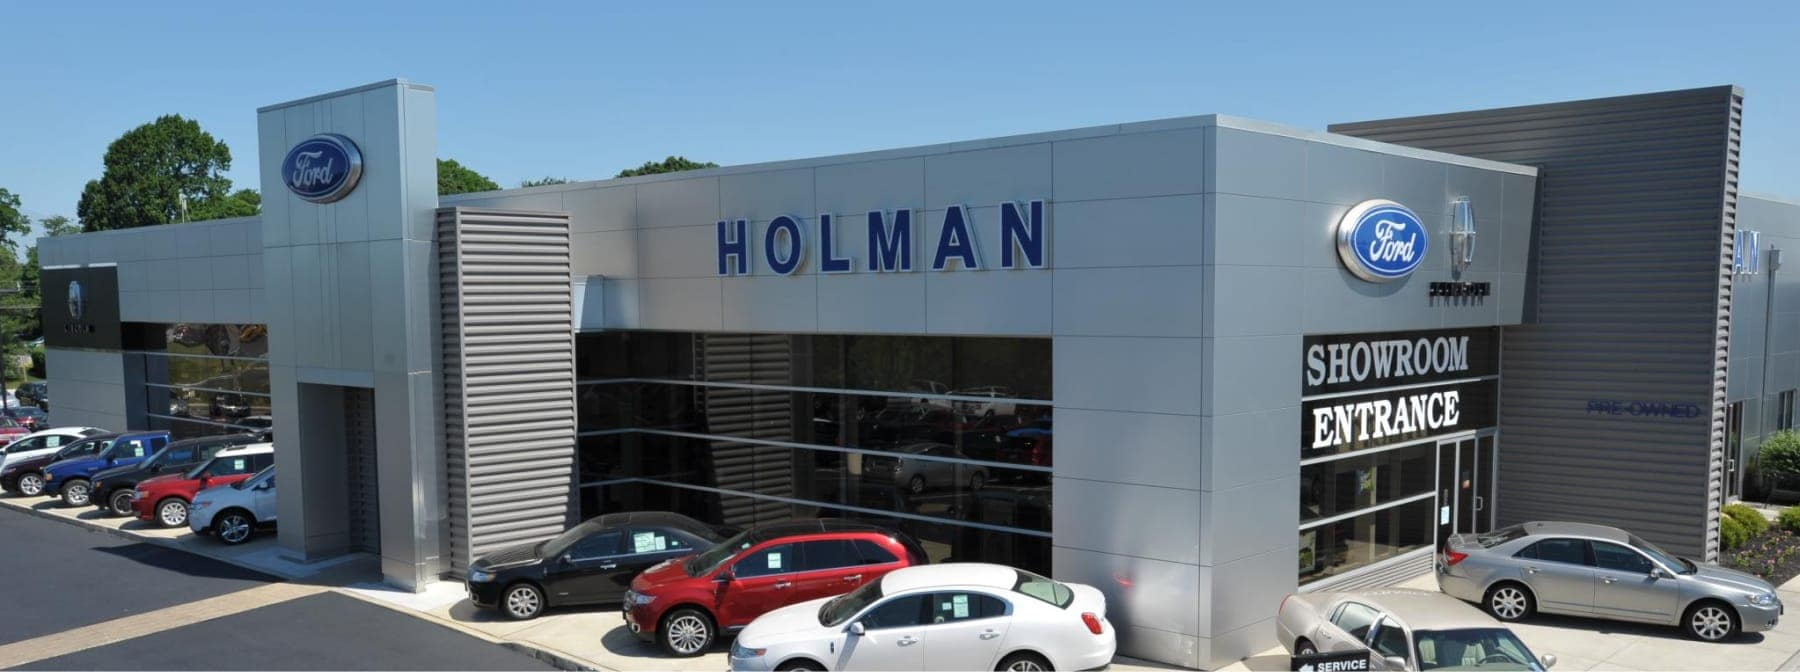 exterior view of Holman Ford Maple Shade